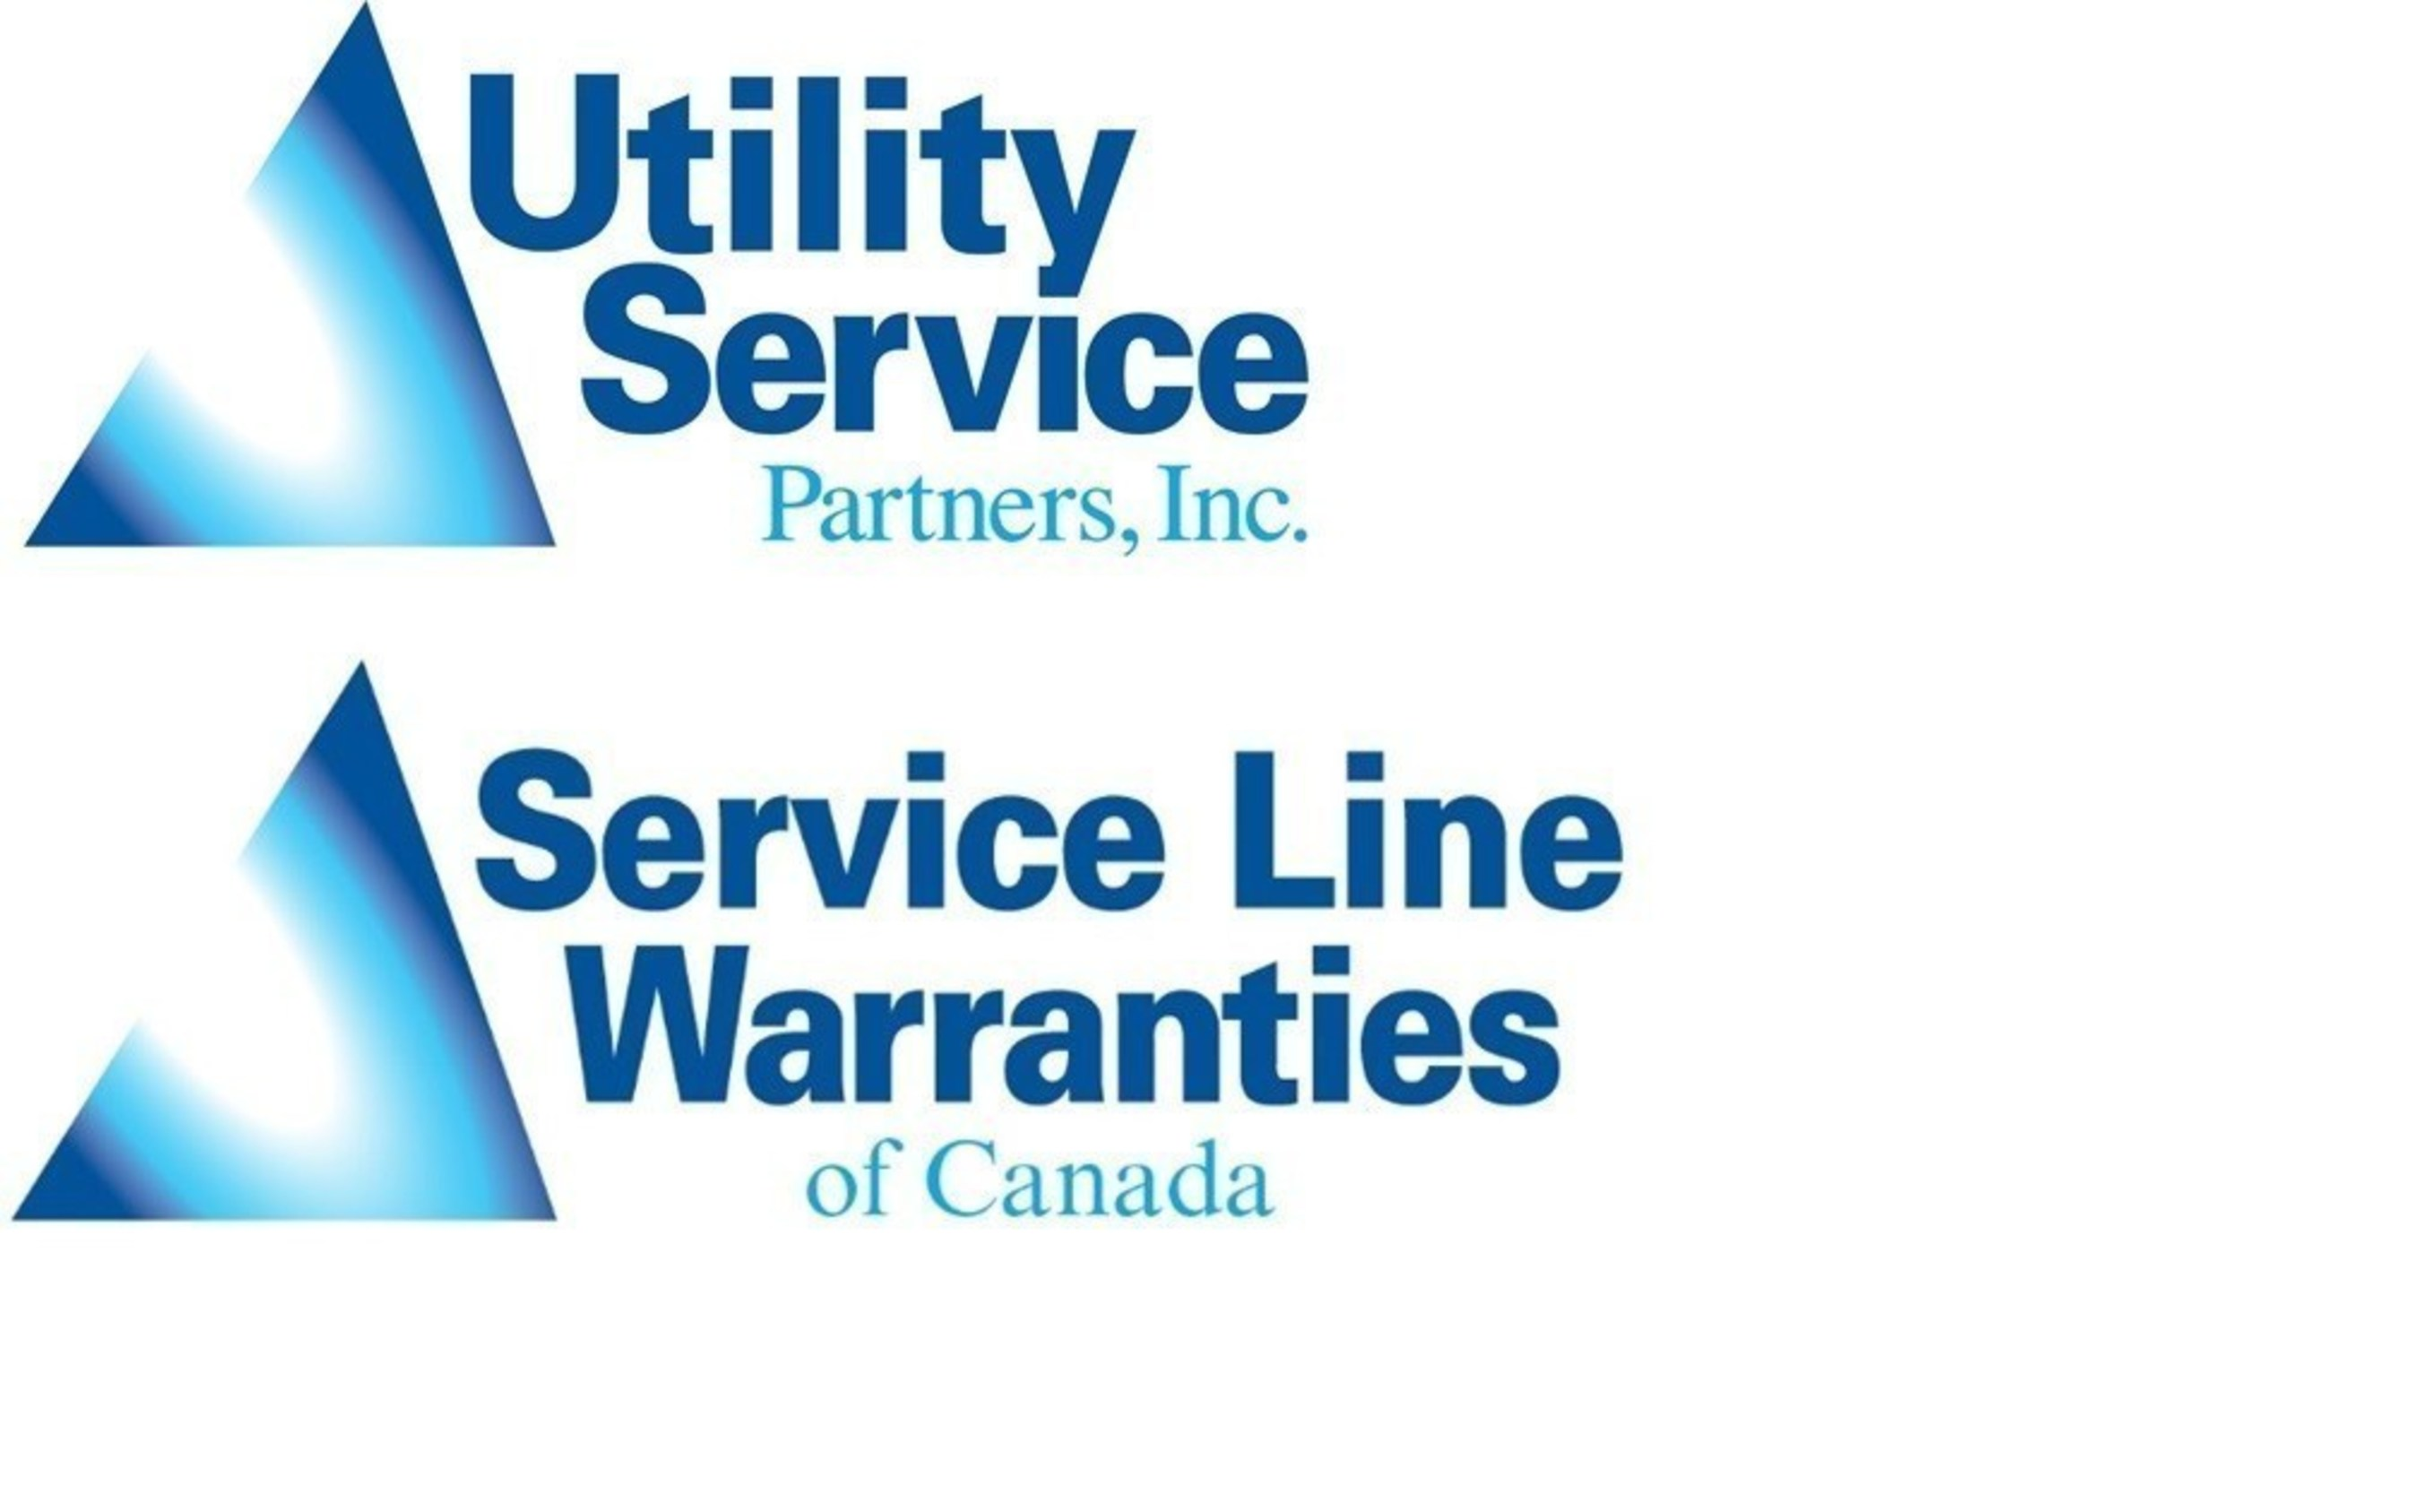 Utility Service Partners provides 80 free warranties to Southeast Energy Assistance in Atlanta